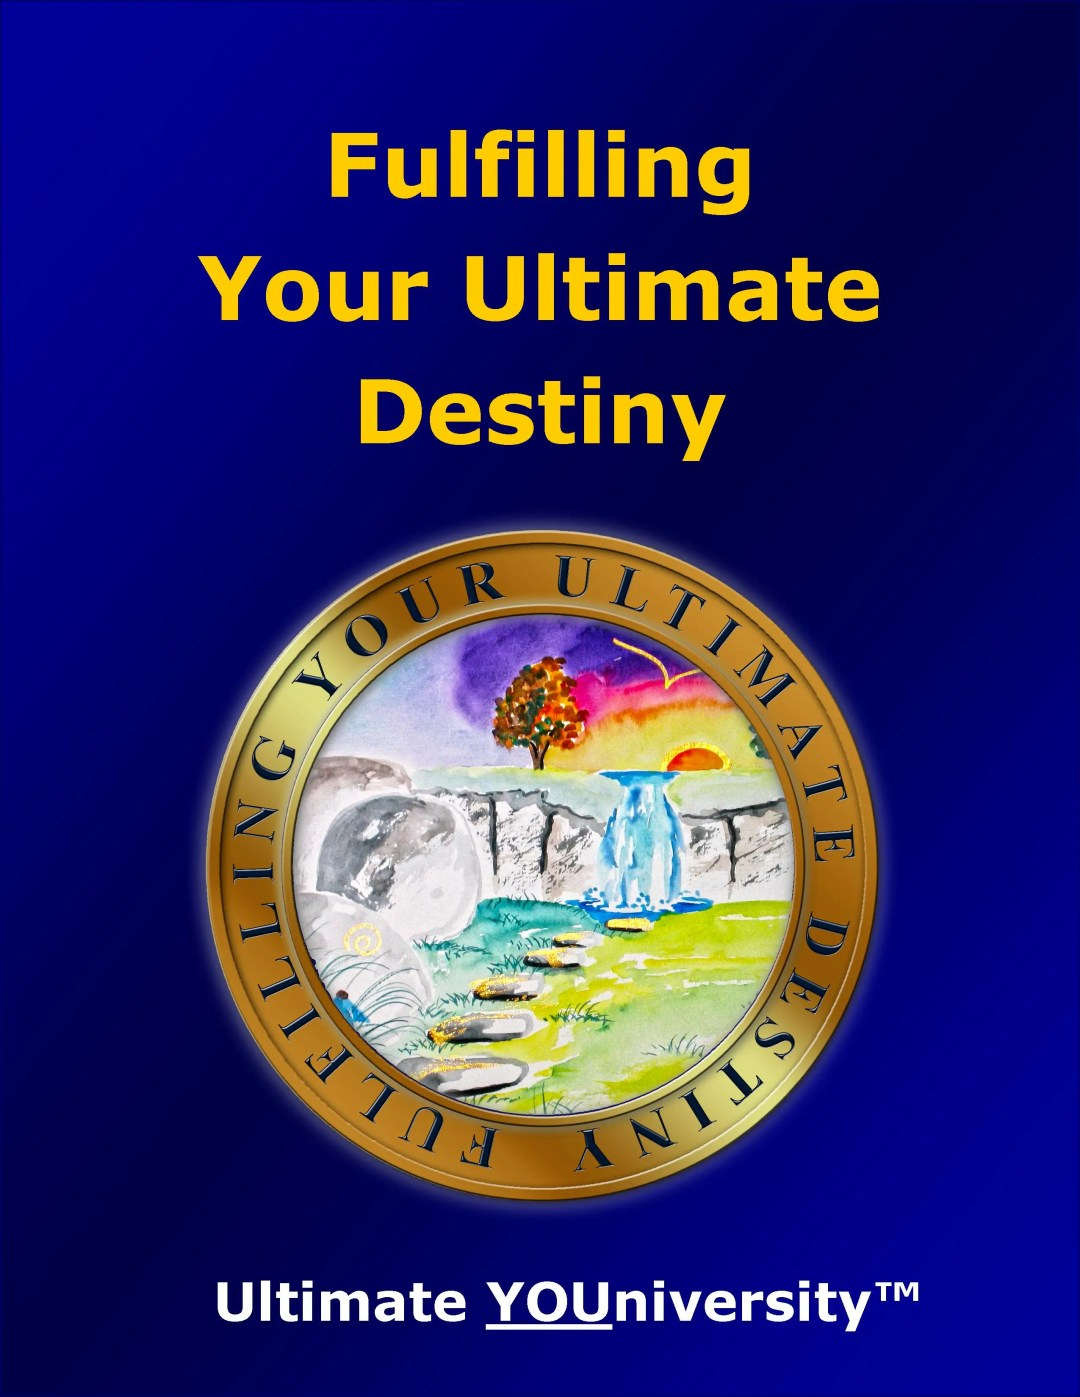 Fulfilling Your Ultimate Destiny, one of the 14 Categories